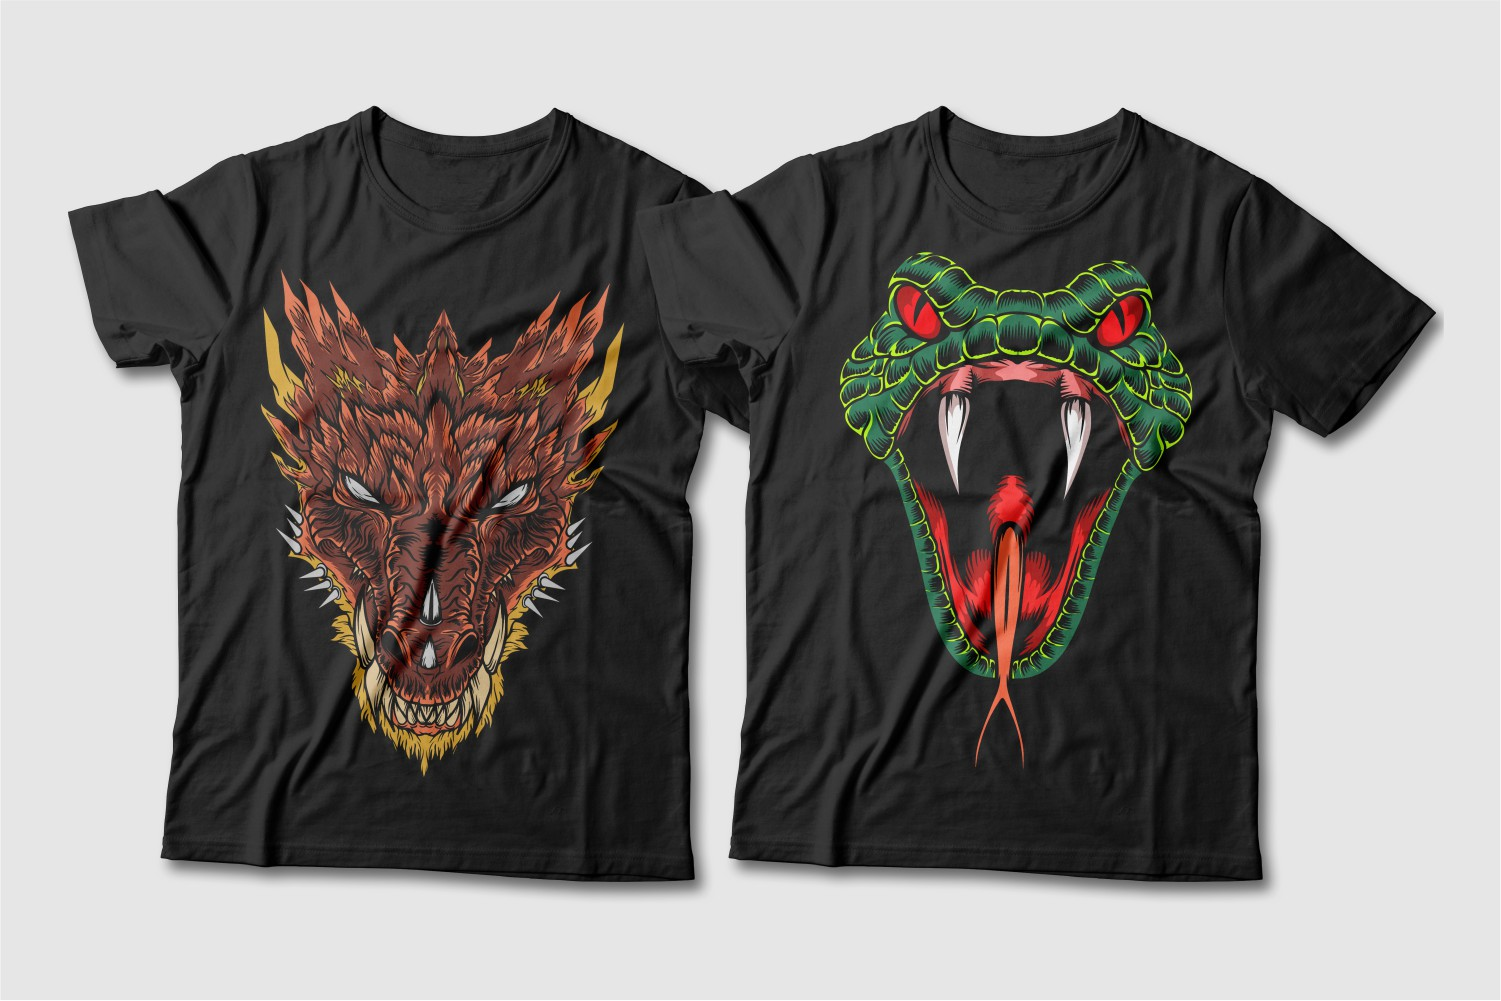 Black T-shirts with a crew neck and a brown dragon with a yellow tint and a green snake with red eyes and tongue.